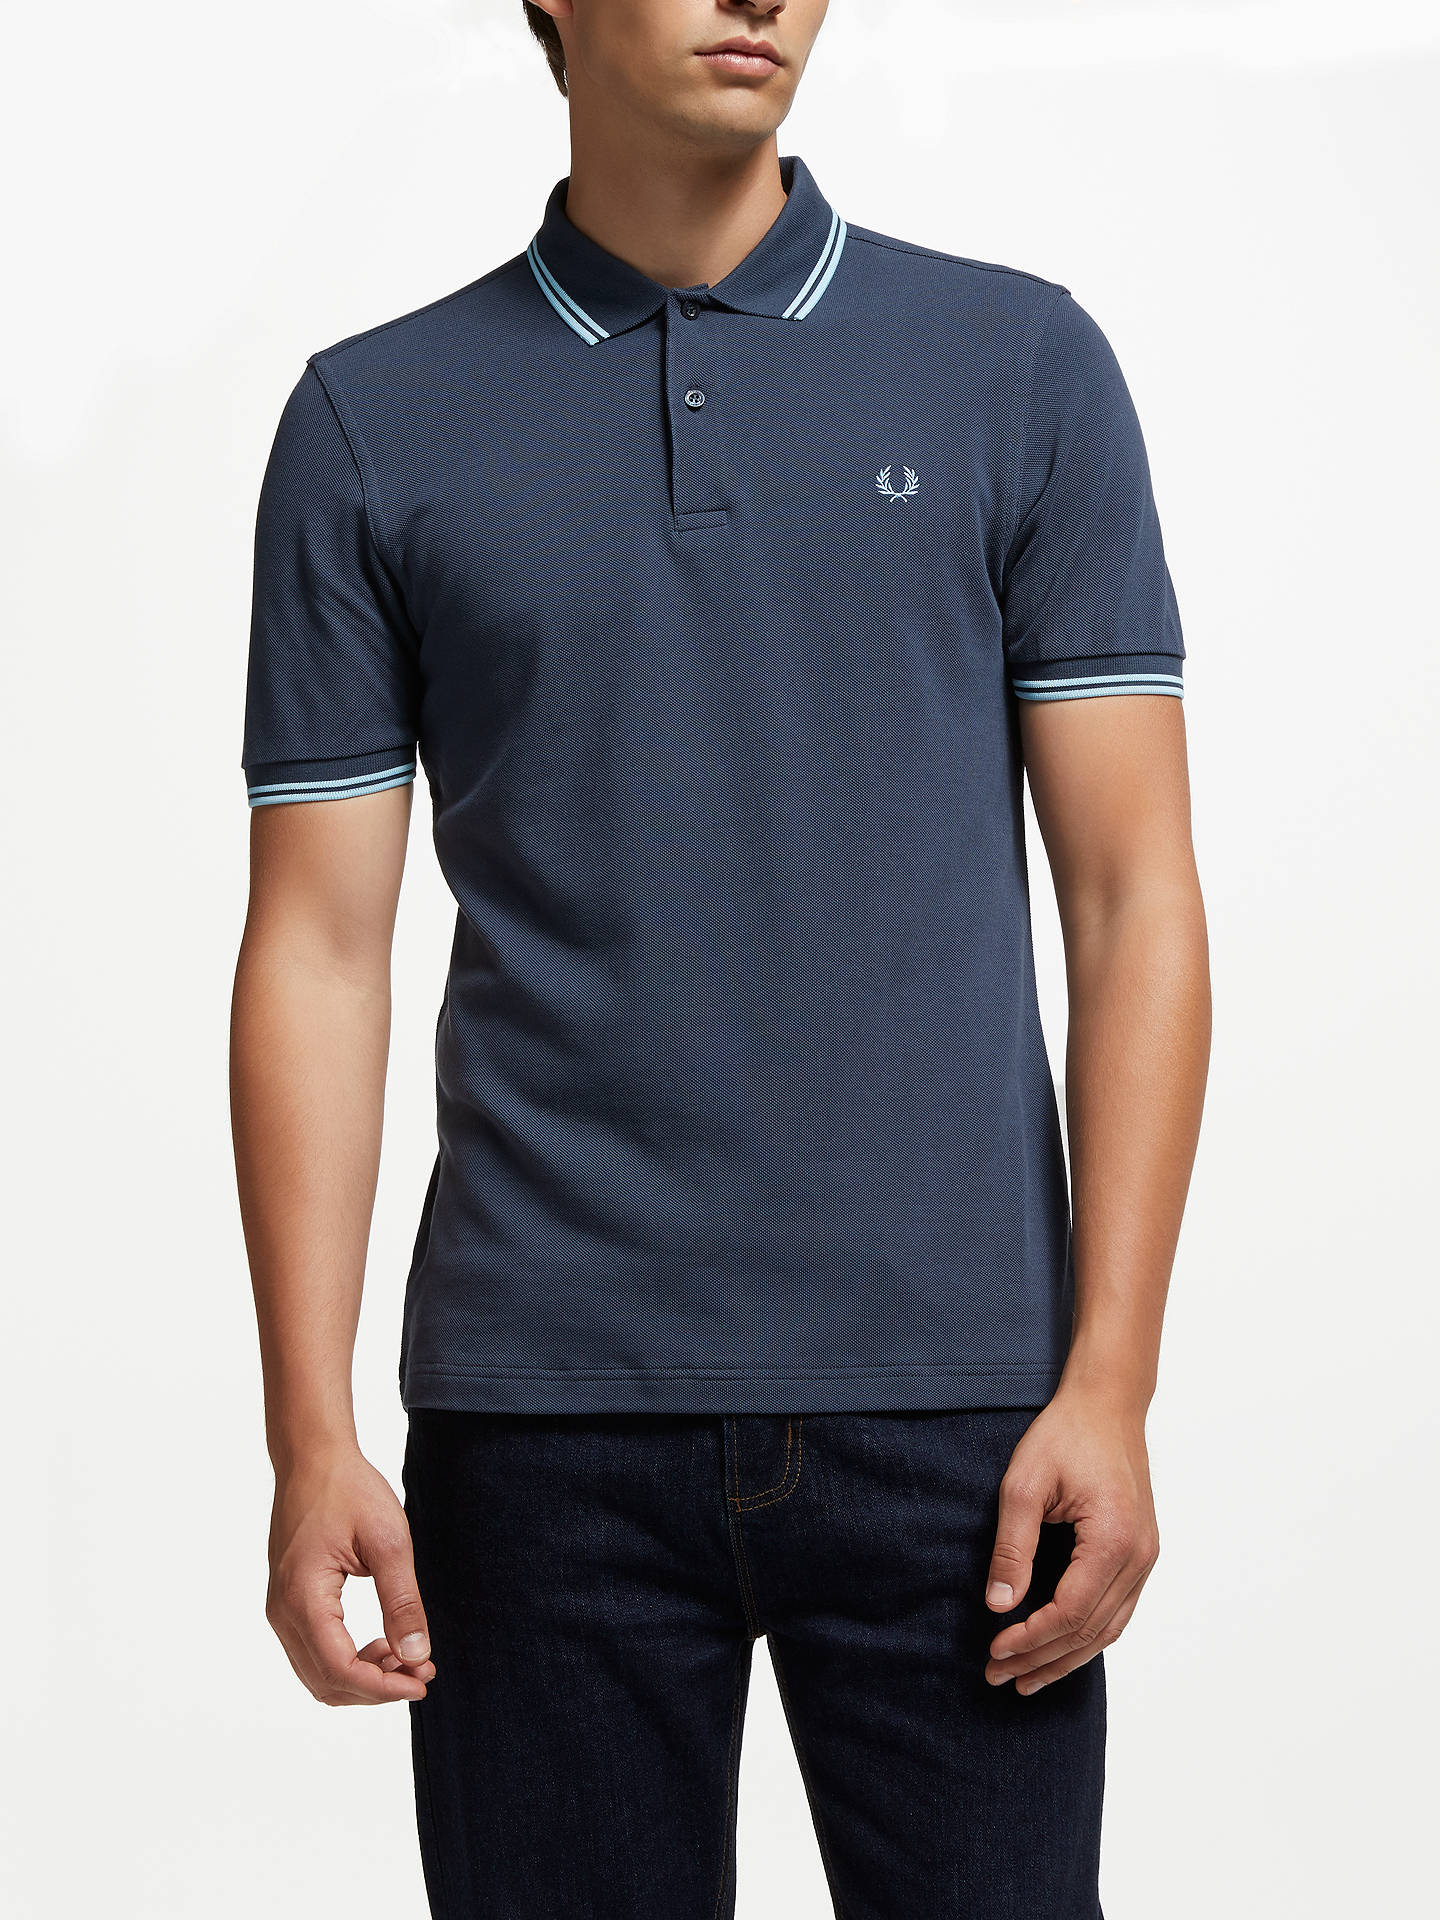 2eb0f7eea Buy Fred Perry Twin Tipped Regular Fit Polo Shirt, Dark Airforce, XXL  Online at ...